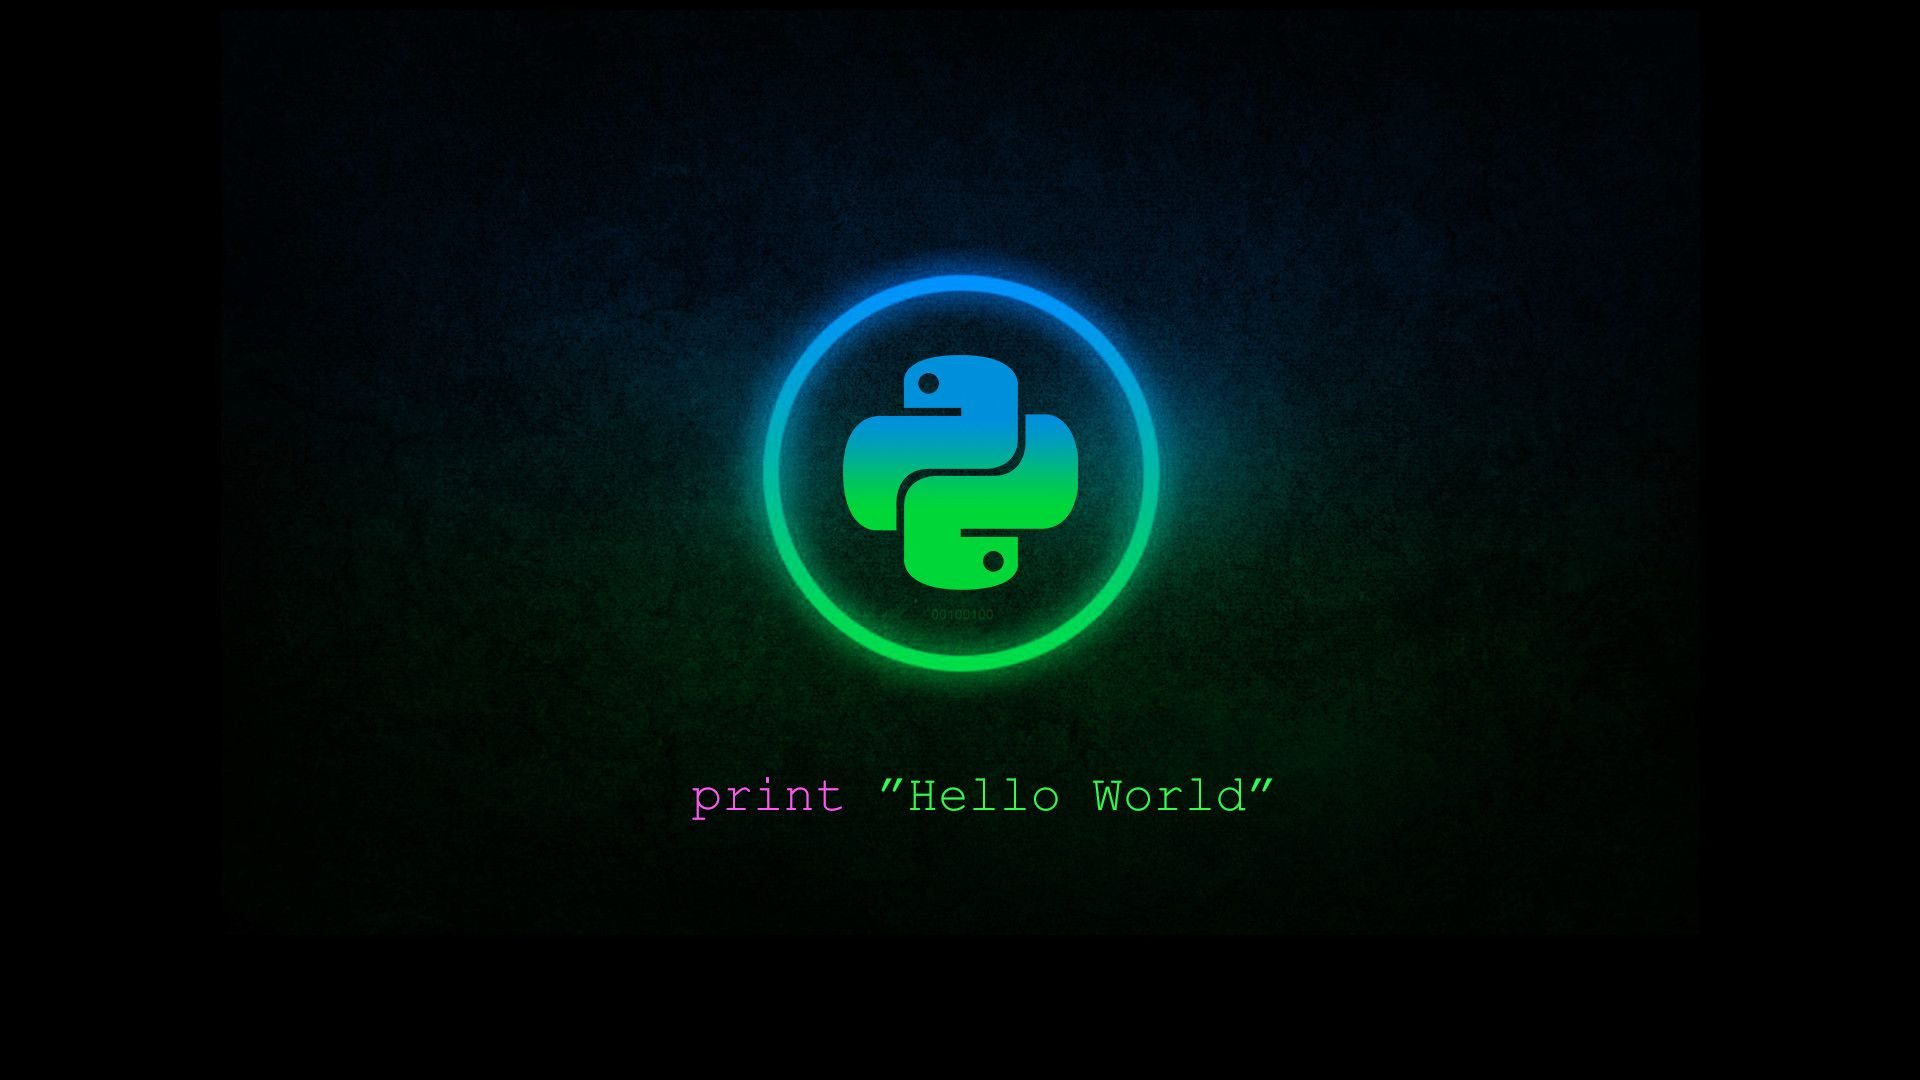 Res 1920x1080 Technologie Programming Python Coding Wallpaper Python Programming Python Computer Science